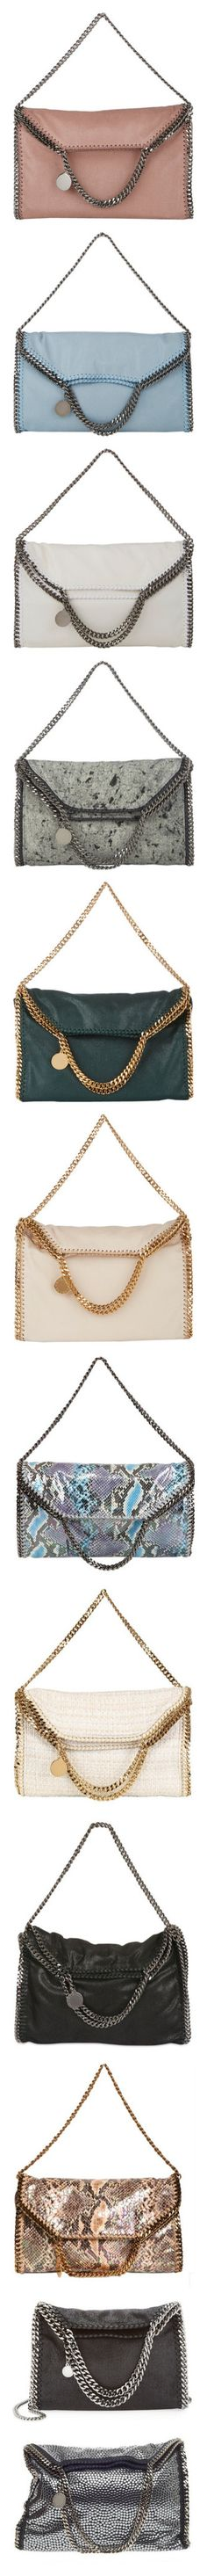 """Stella McCartney - Falabella"" by giovanna1995 ❤ liked on Polyvore featuring Leather, StellaMcCartney, tote, bags, Falabella, handbags, tote bags, pink, stella mccartney tote and pink tote bags"